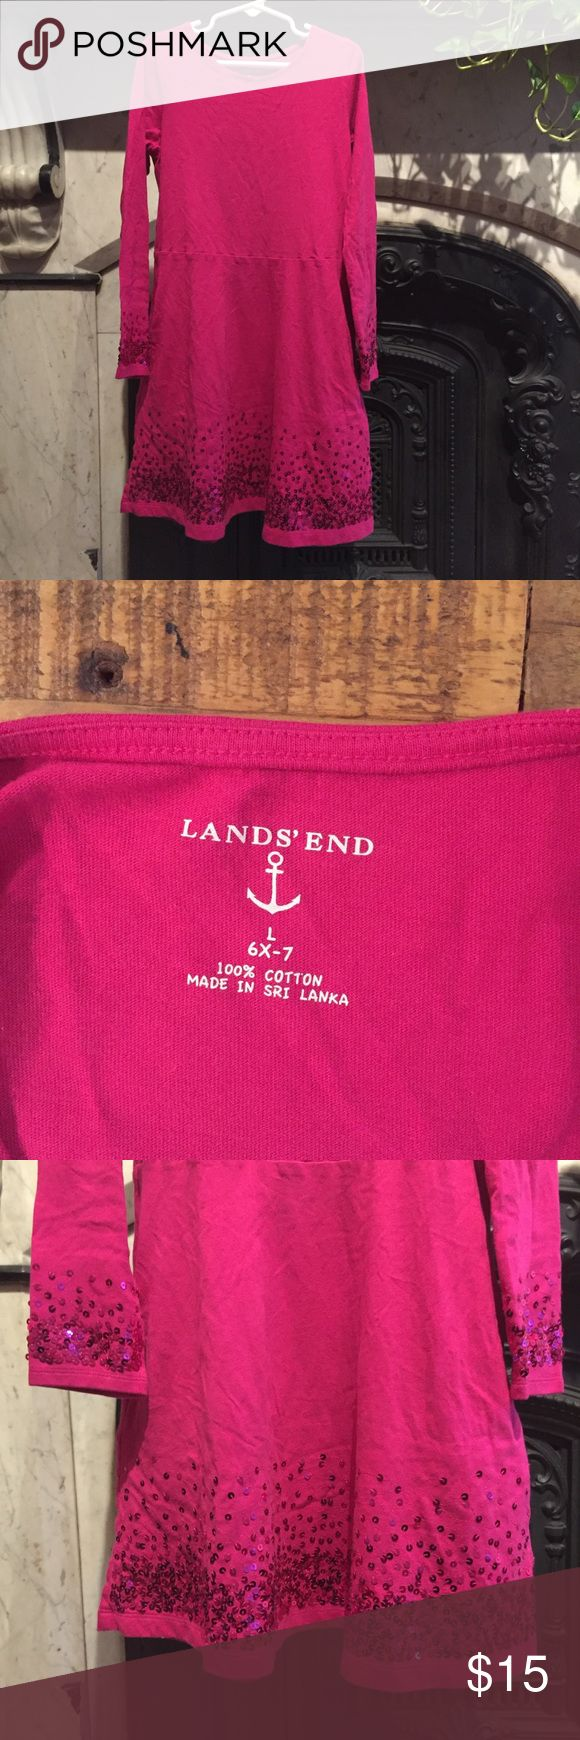 """LAND'S END Girl's Pink Sequin Cotton Dress- L 6x-7 *NEW~Never worn*  Adorable, comfortable and SPARKLY pink cotton long-sleeve dress by Land's End!  Details:  Size L (6x-7)  Magenta pink  100% Cotton  Pink sequin detail on wrists and skirt.  26"""" from shoulder to hem.  Knee-length  2 pockets  Machine washable  Perfect condition, Zero flaws! Lands' End Dresses Casual"""